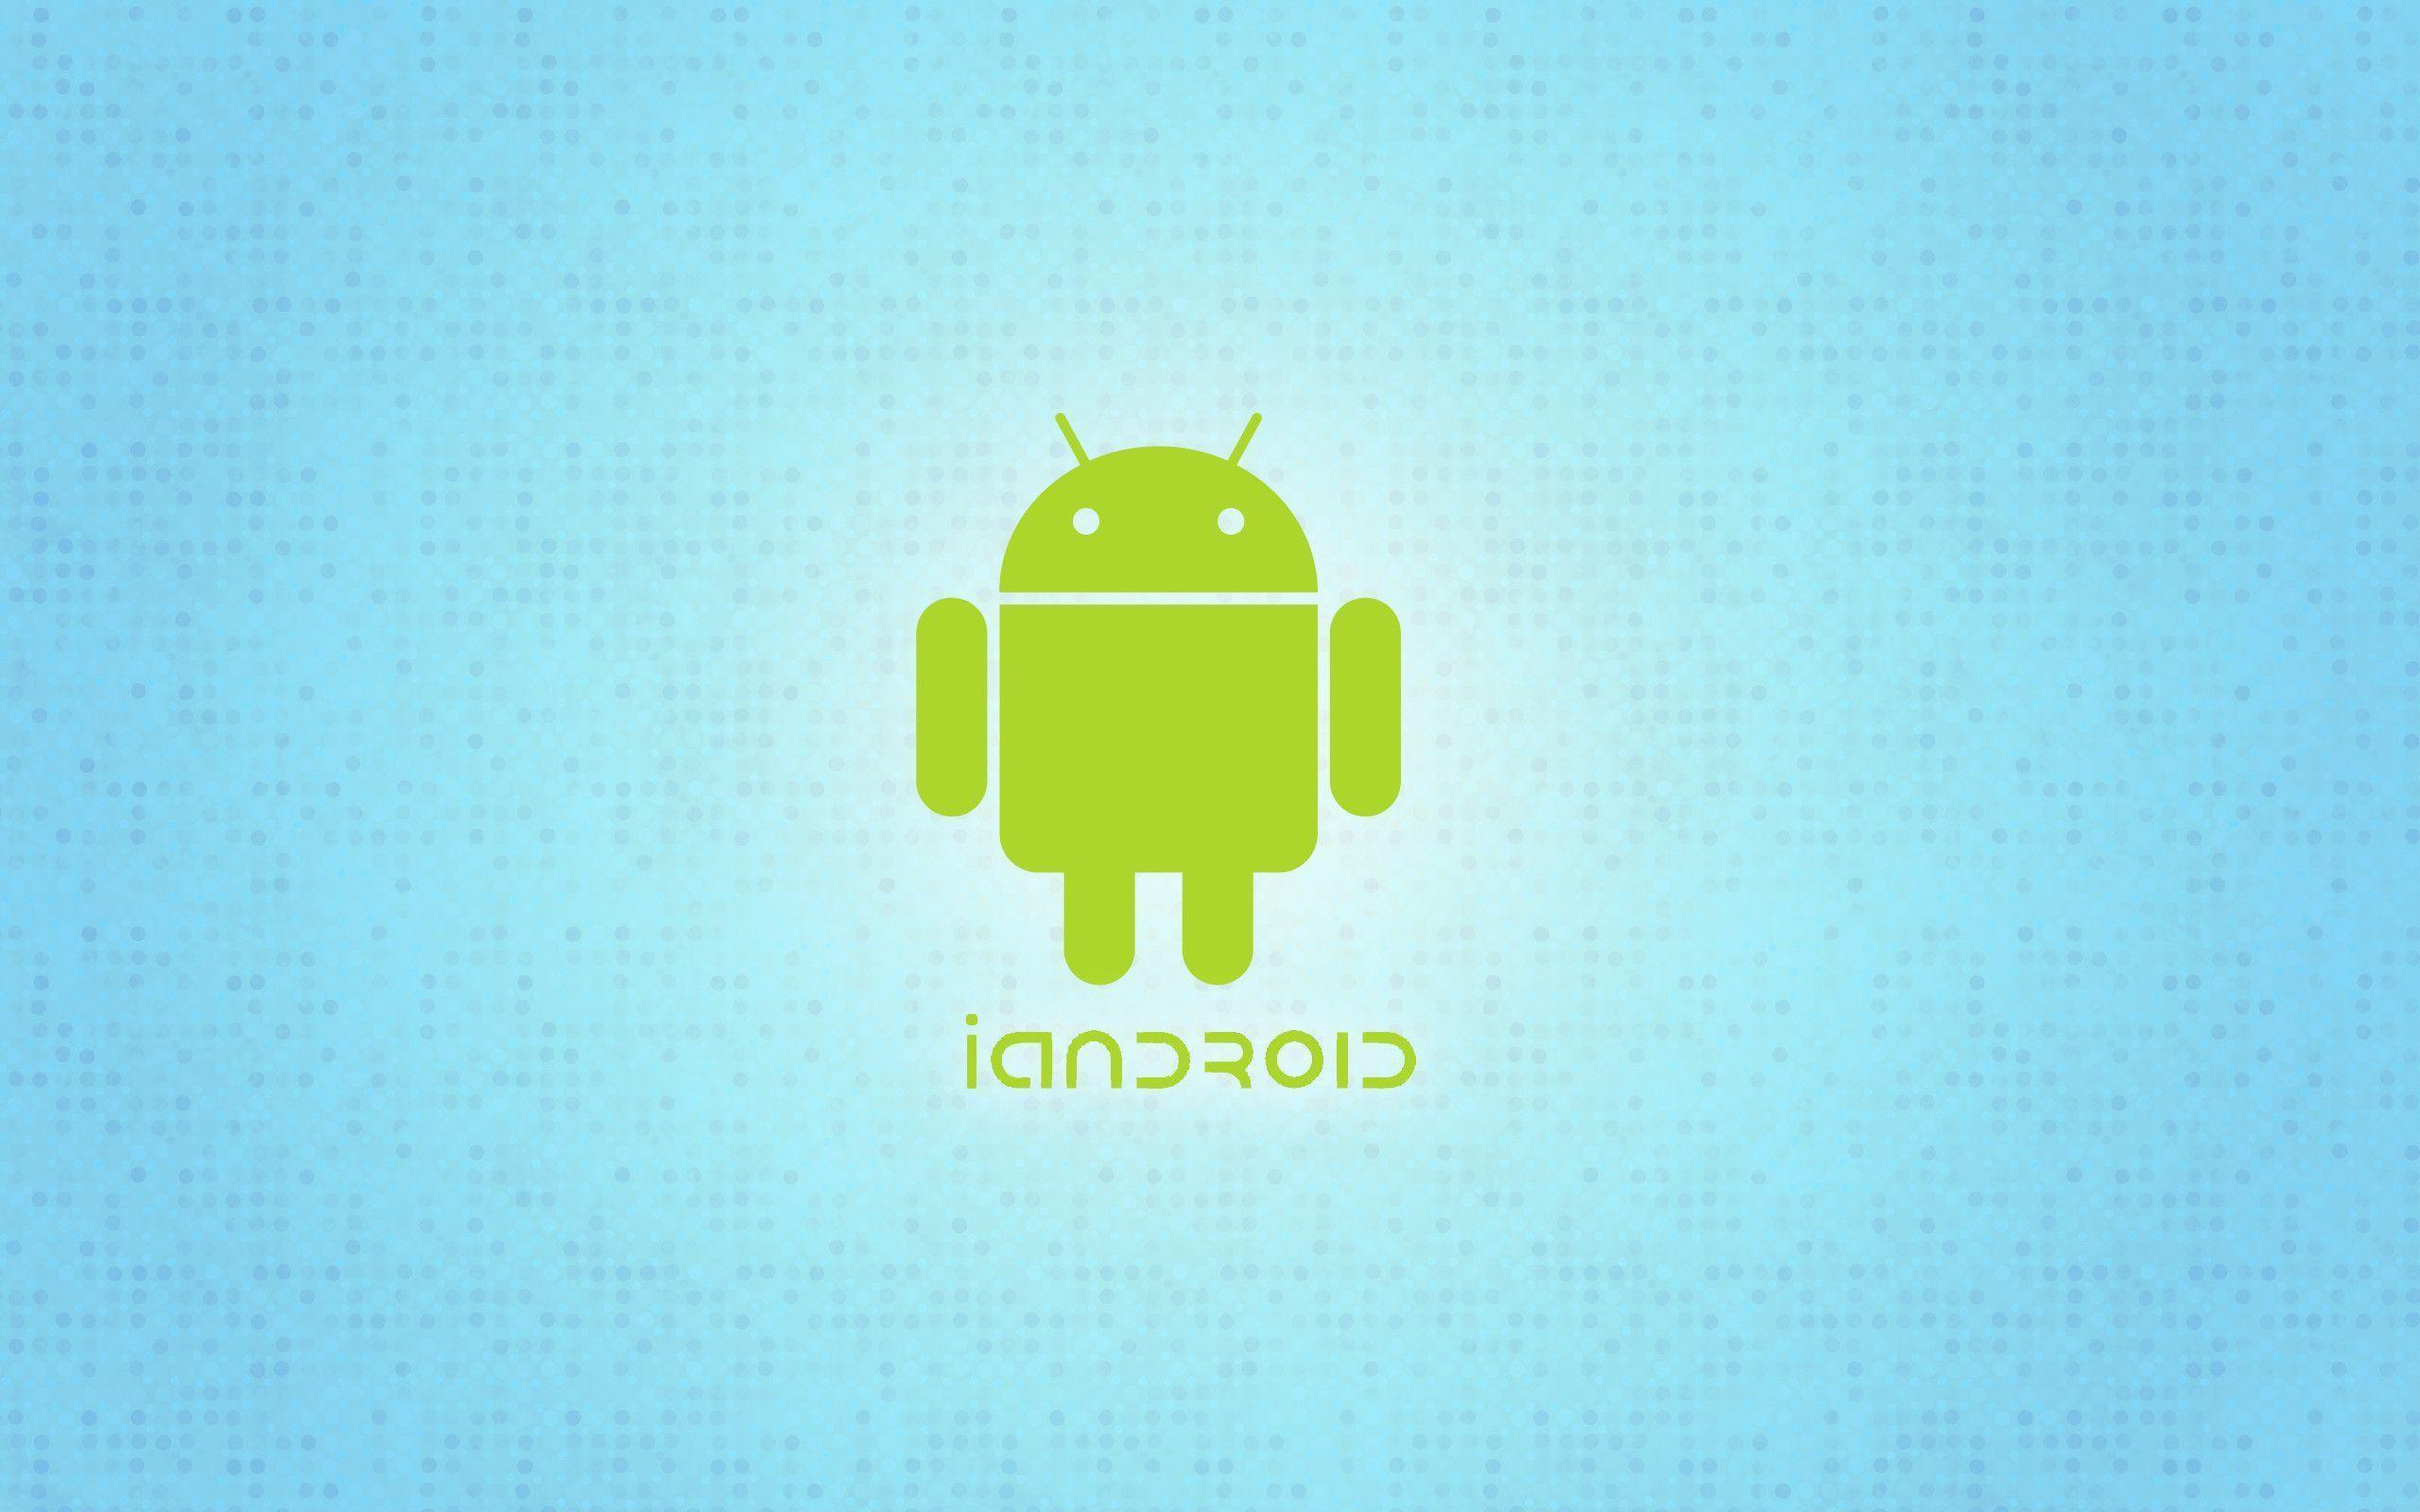 Download High Quality Android Wallpapers